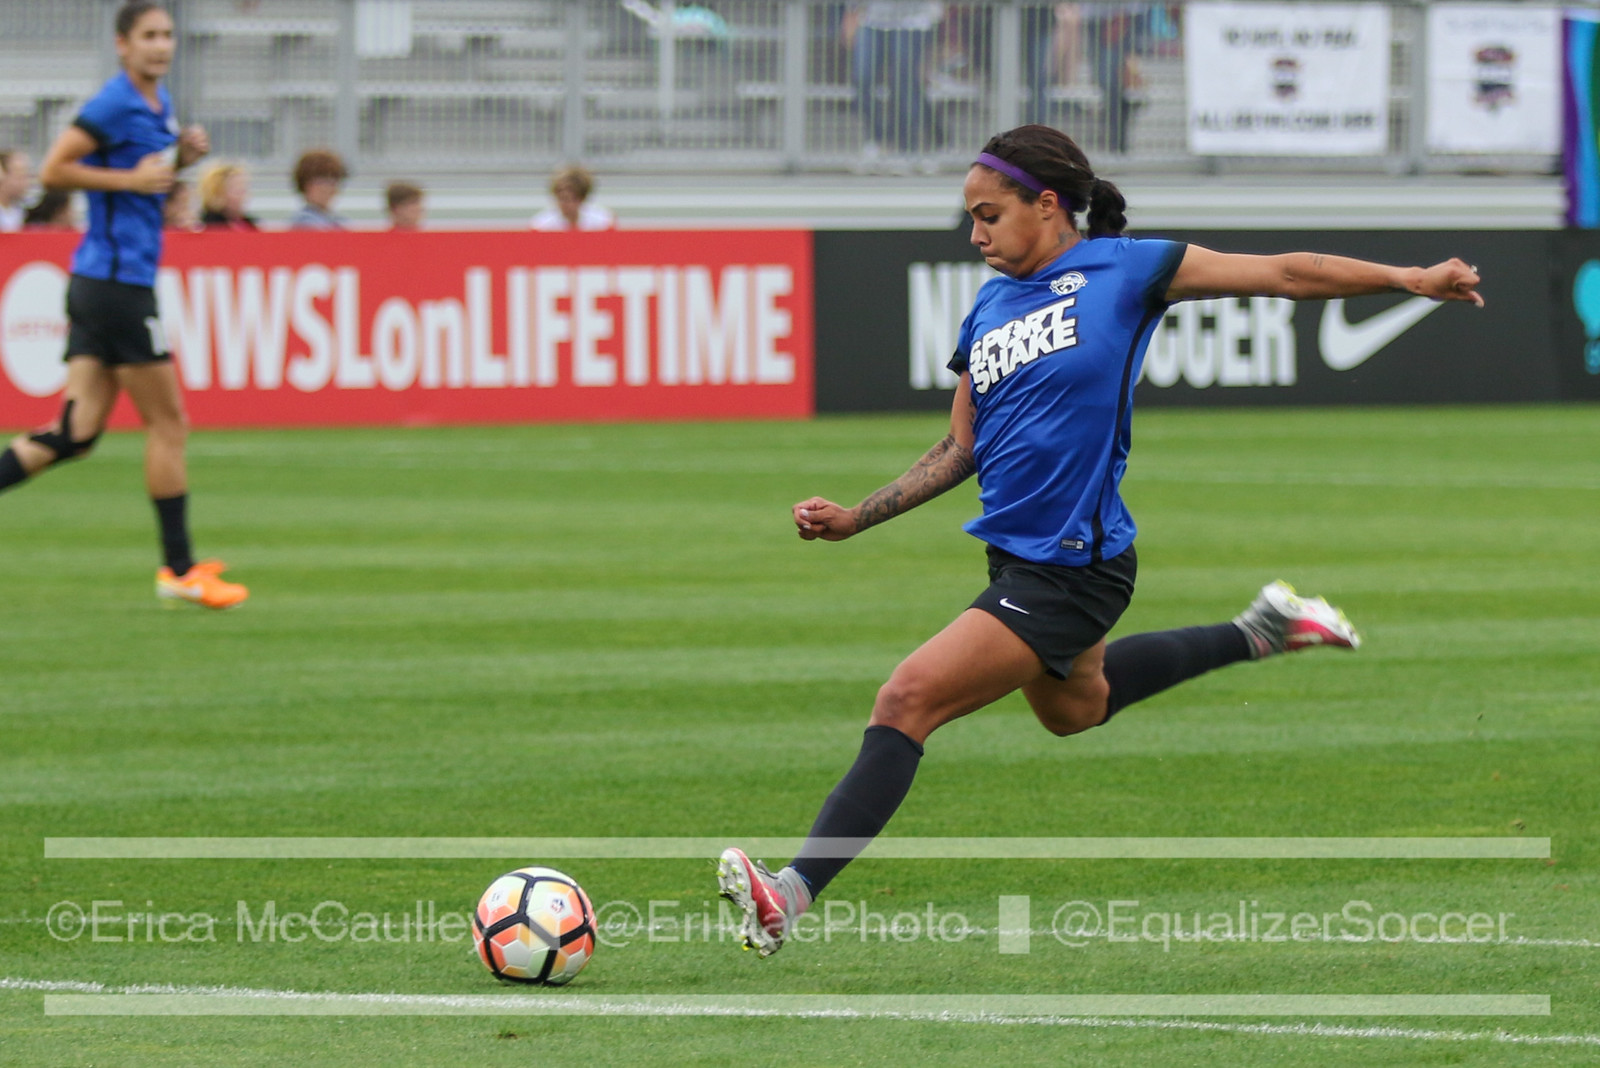 Sydney Leroux will play the Reign with whom she won the Shield in 2014 before losing to her current team in the NWSL Championship (photo copyright EriMac Photo for The Equalizer)